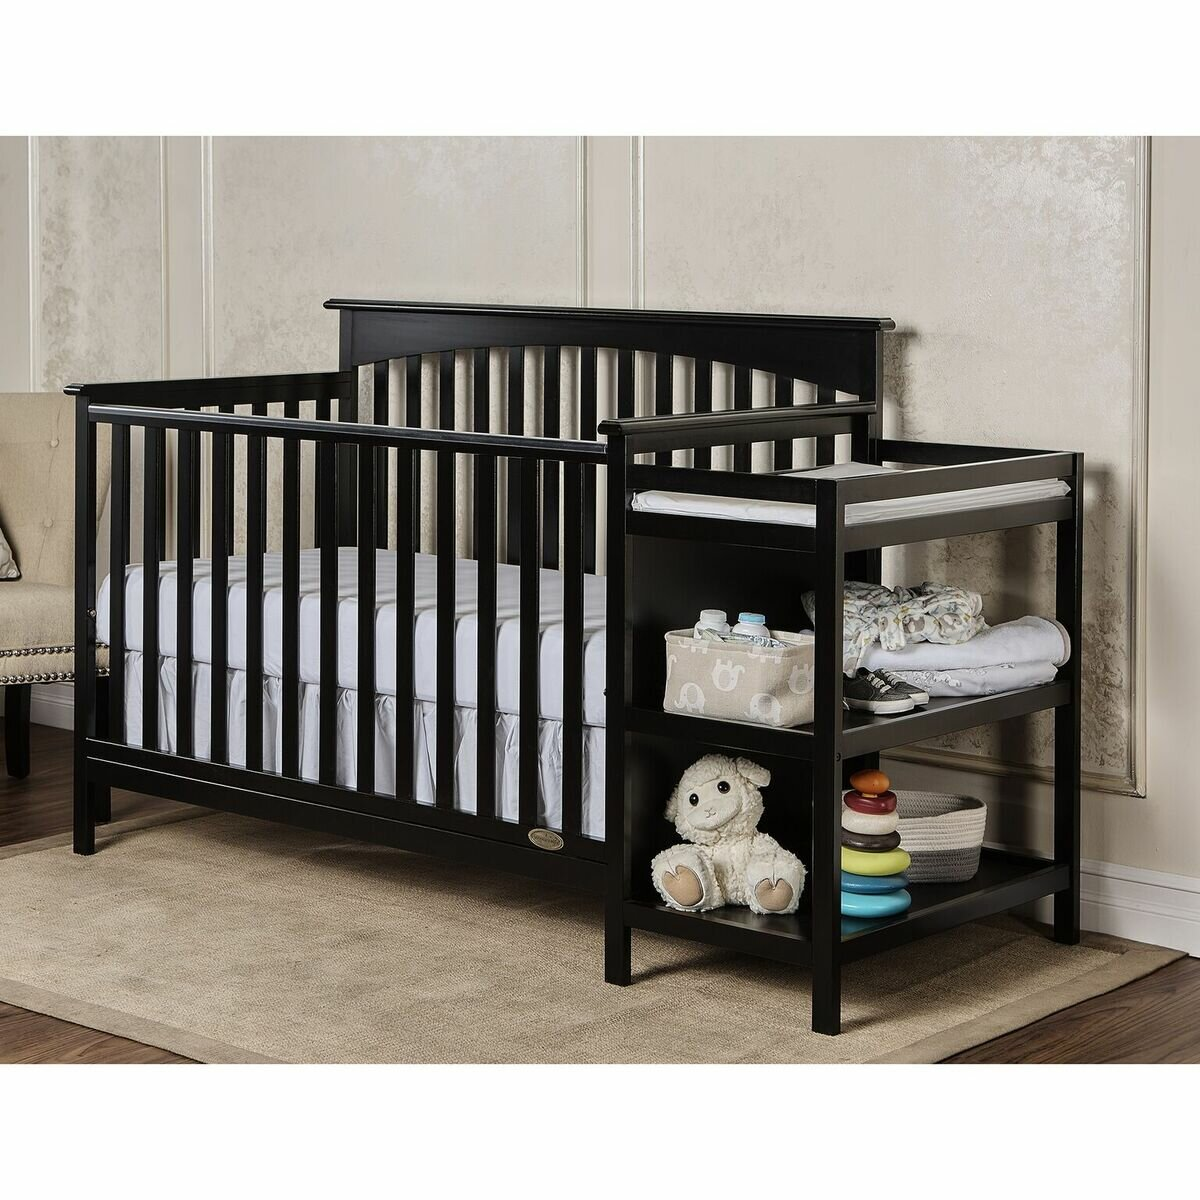 Dream On Me Chloe 3 In 1 Convertible Crib And Changer Combo Reviews Wayfair